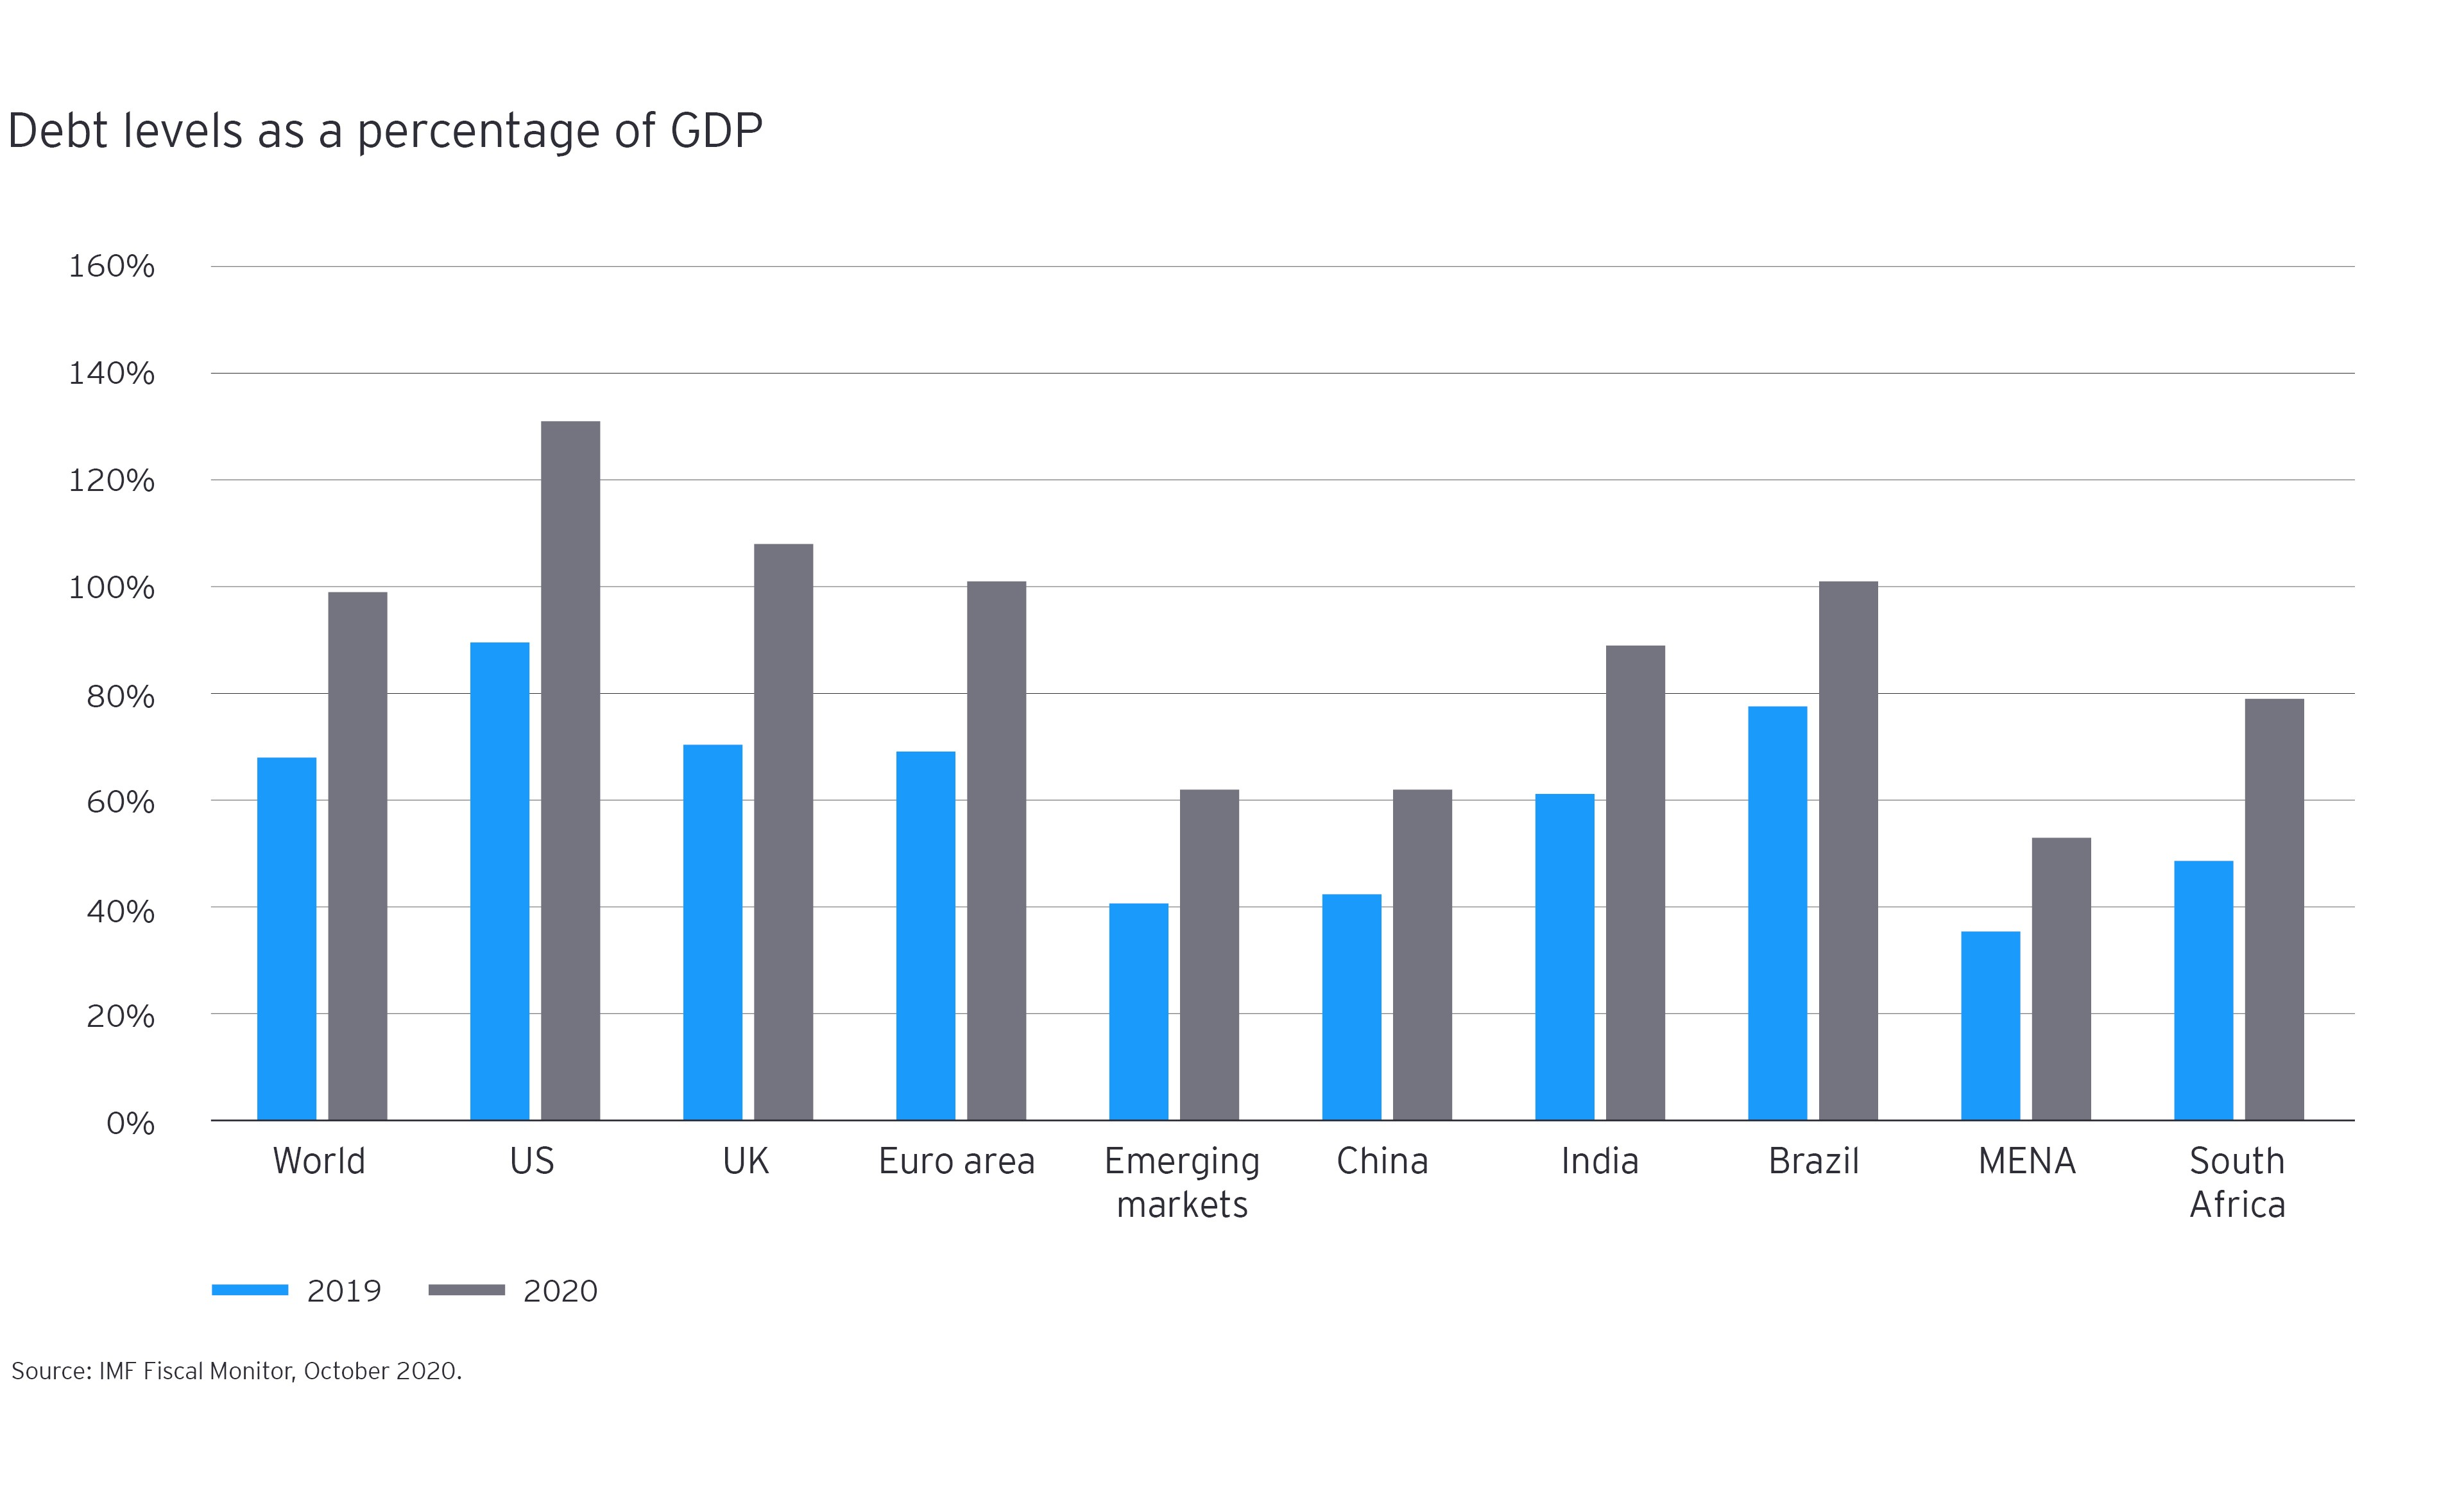 Debt levels as a percentage of GDP